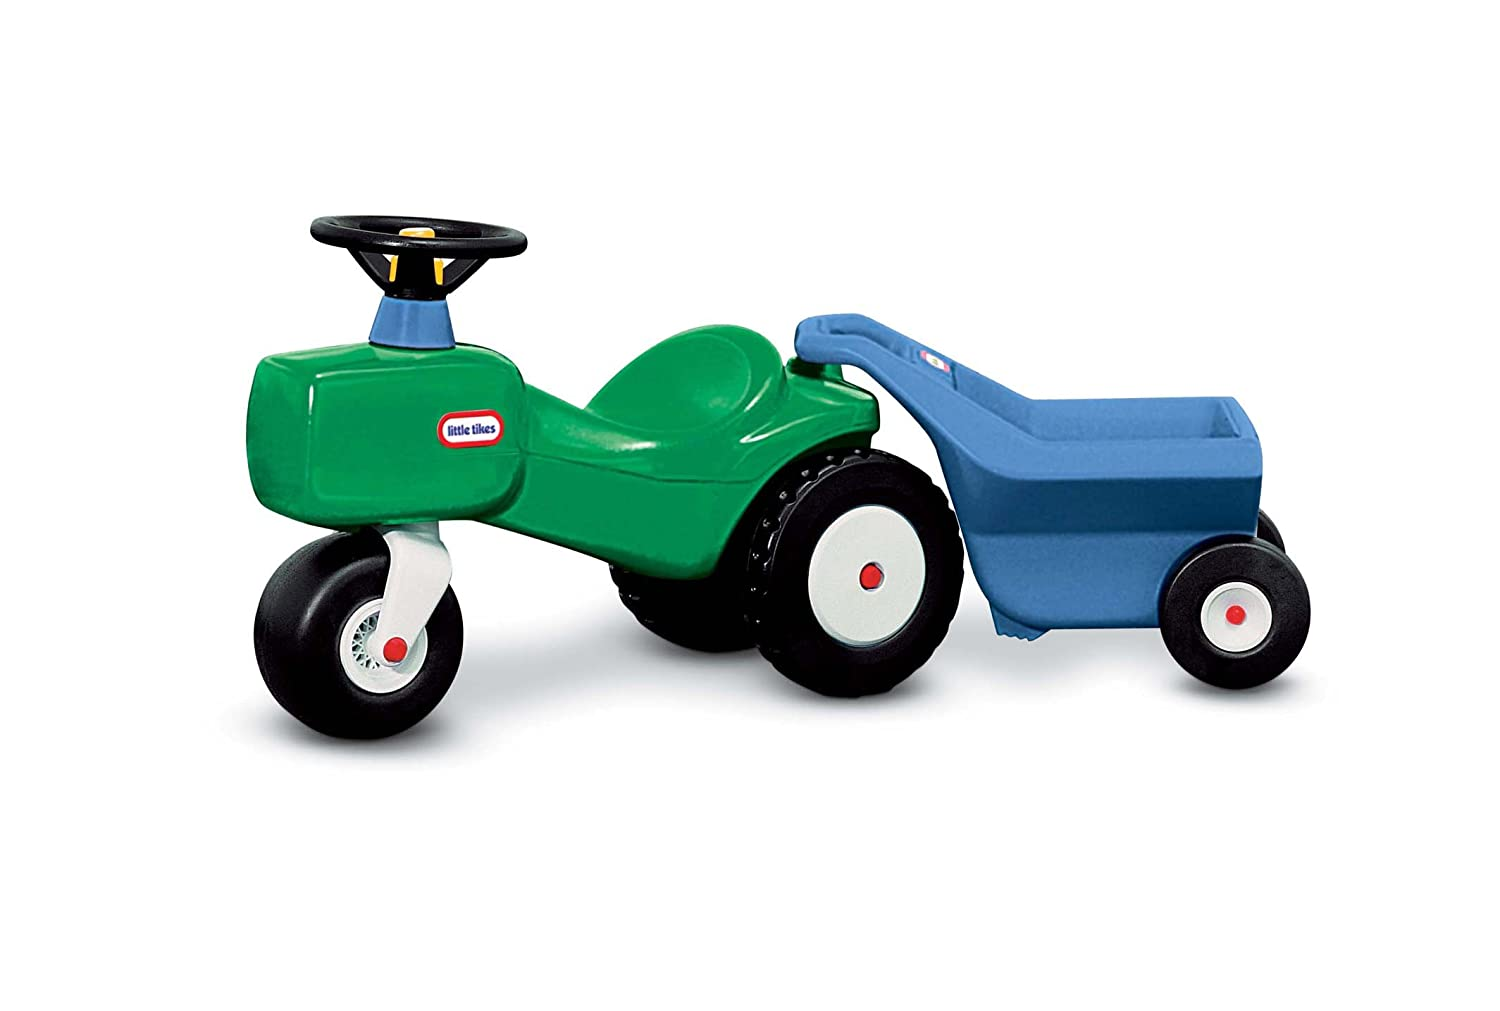 Little Tikes Ride On Toys : Amazon little tikes toddler tractor and cart toys games